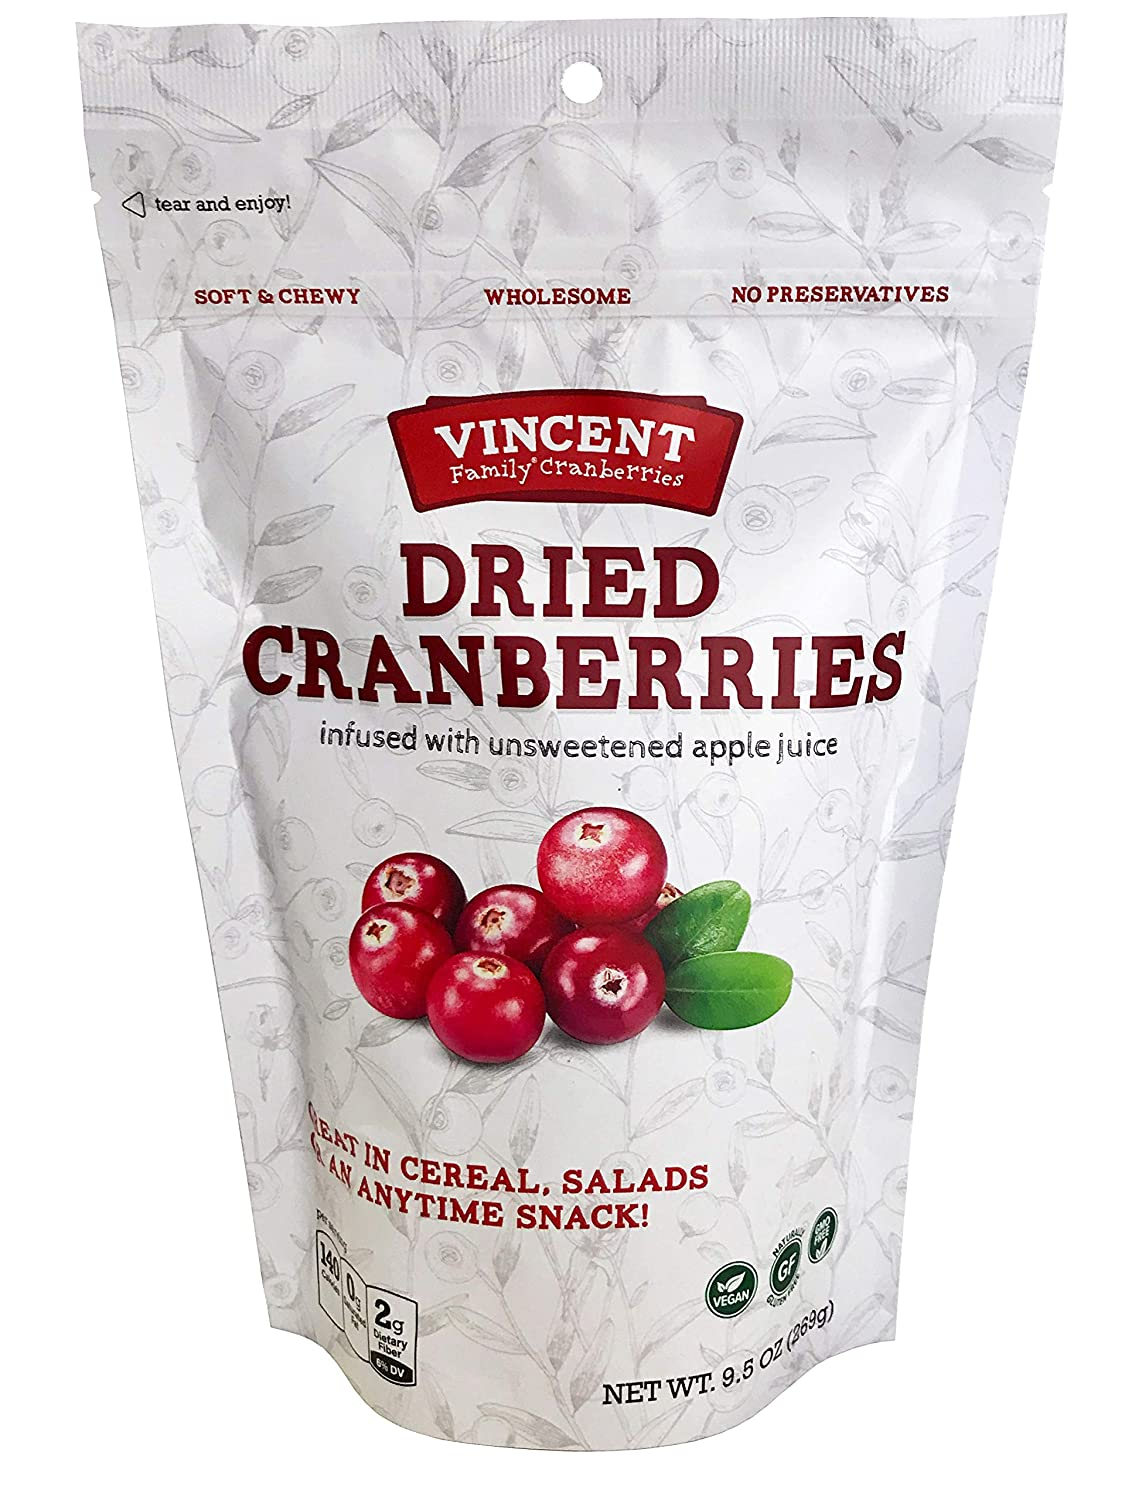 Vincent Family Dried Cranberries Infused With Unsweetened Apple Juice, 9.5 Oz